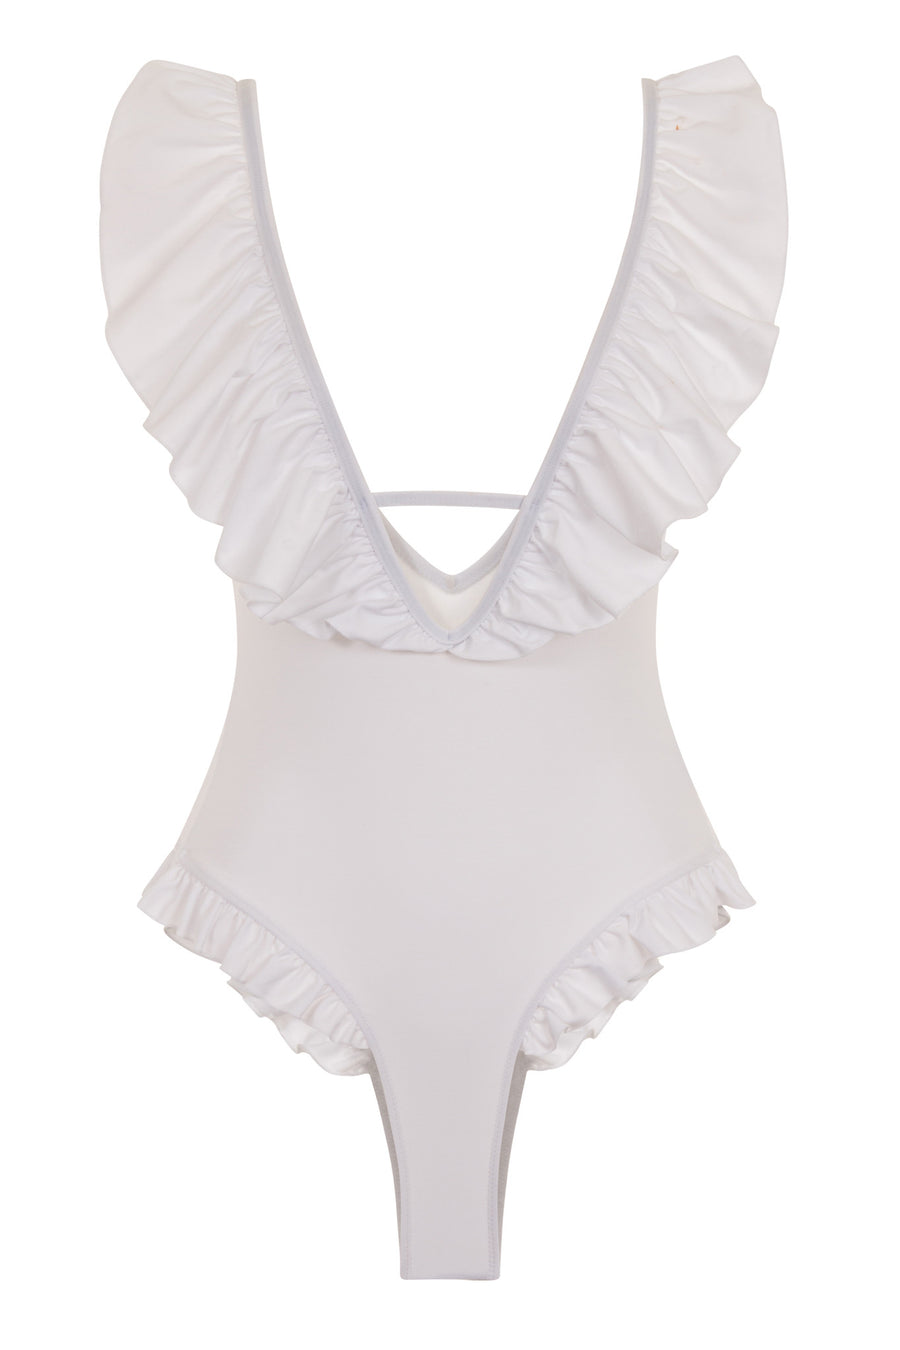 Afina London Tiffany Bridal Ruffled Swimsuit